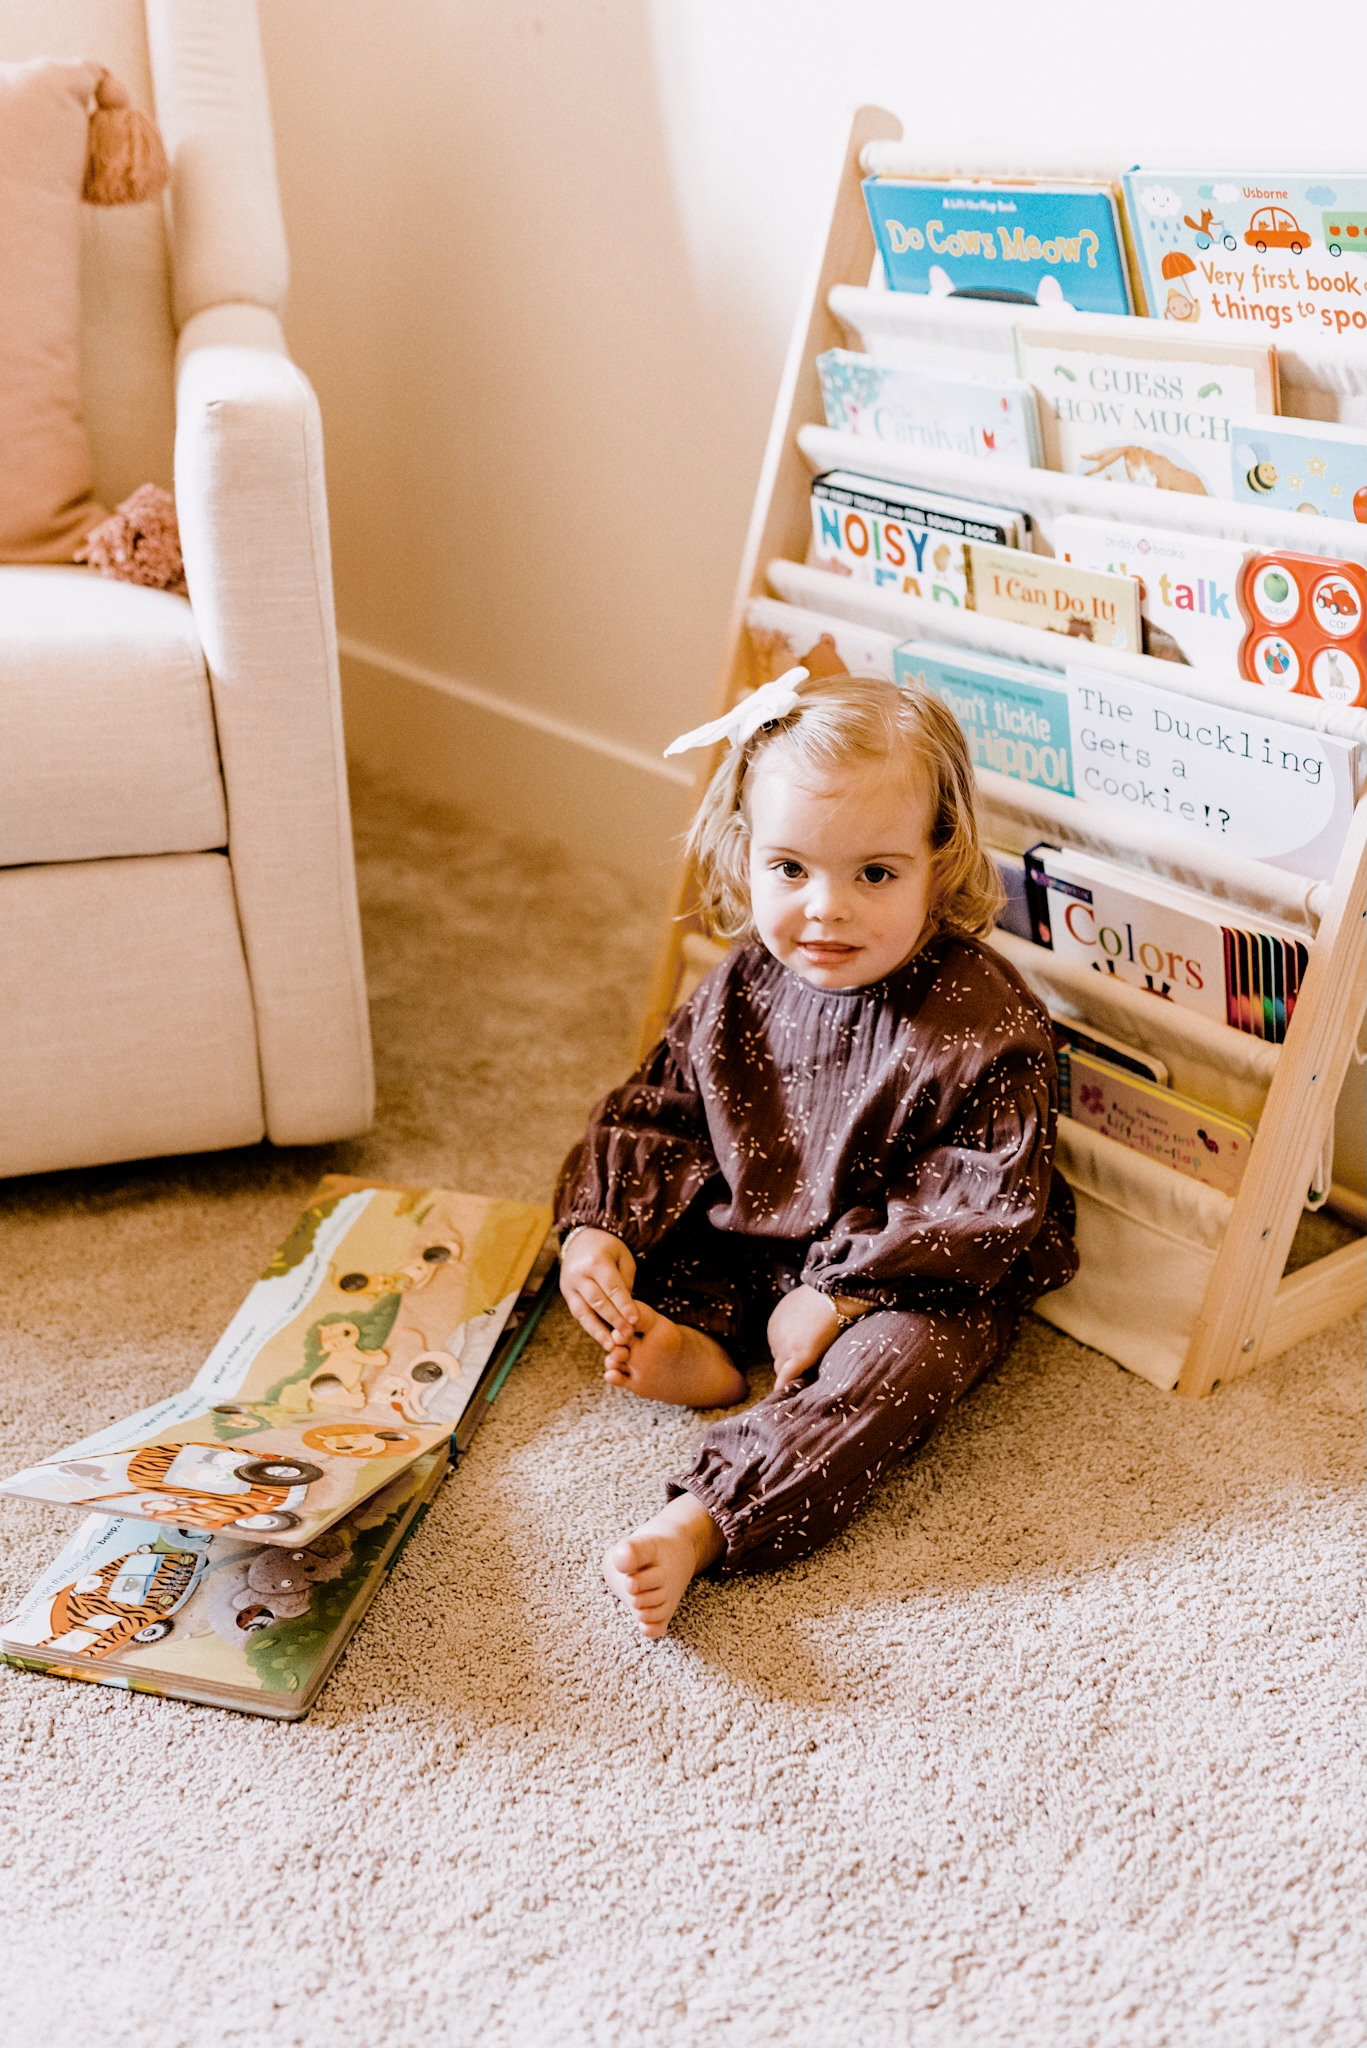 How to organize and declutter toys